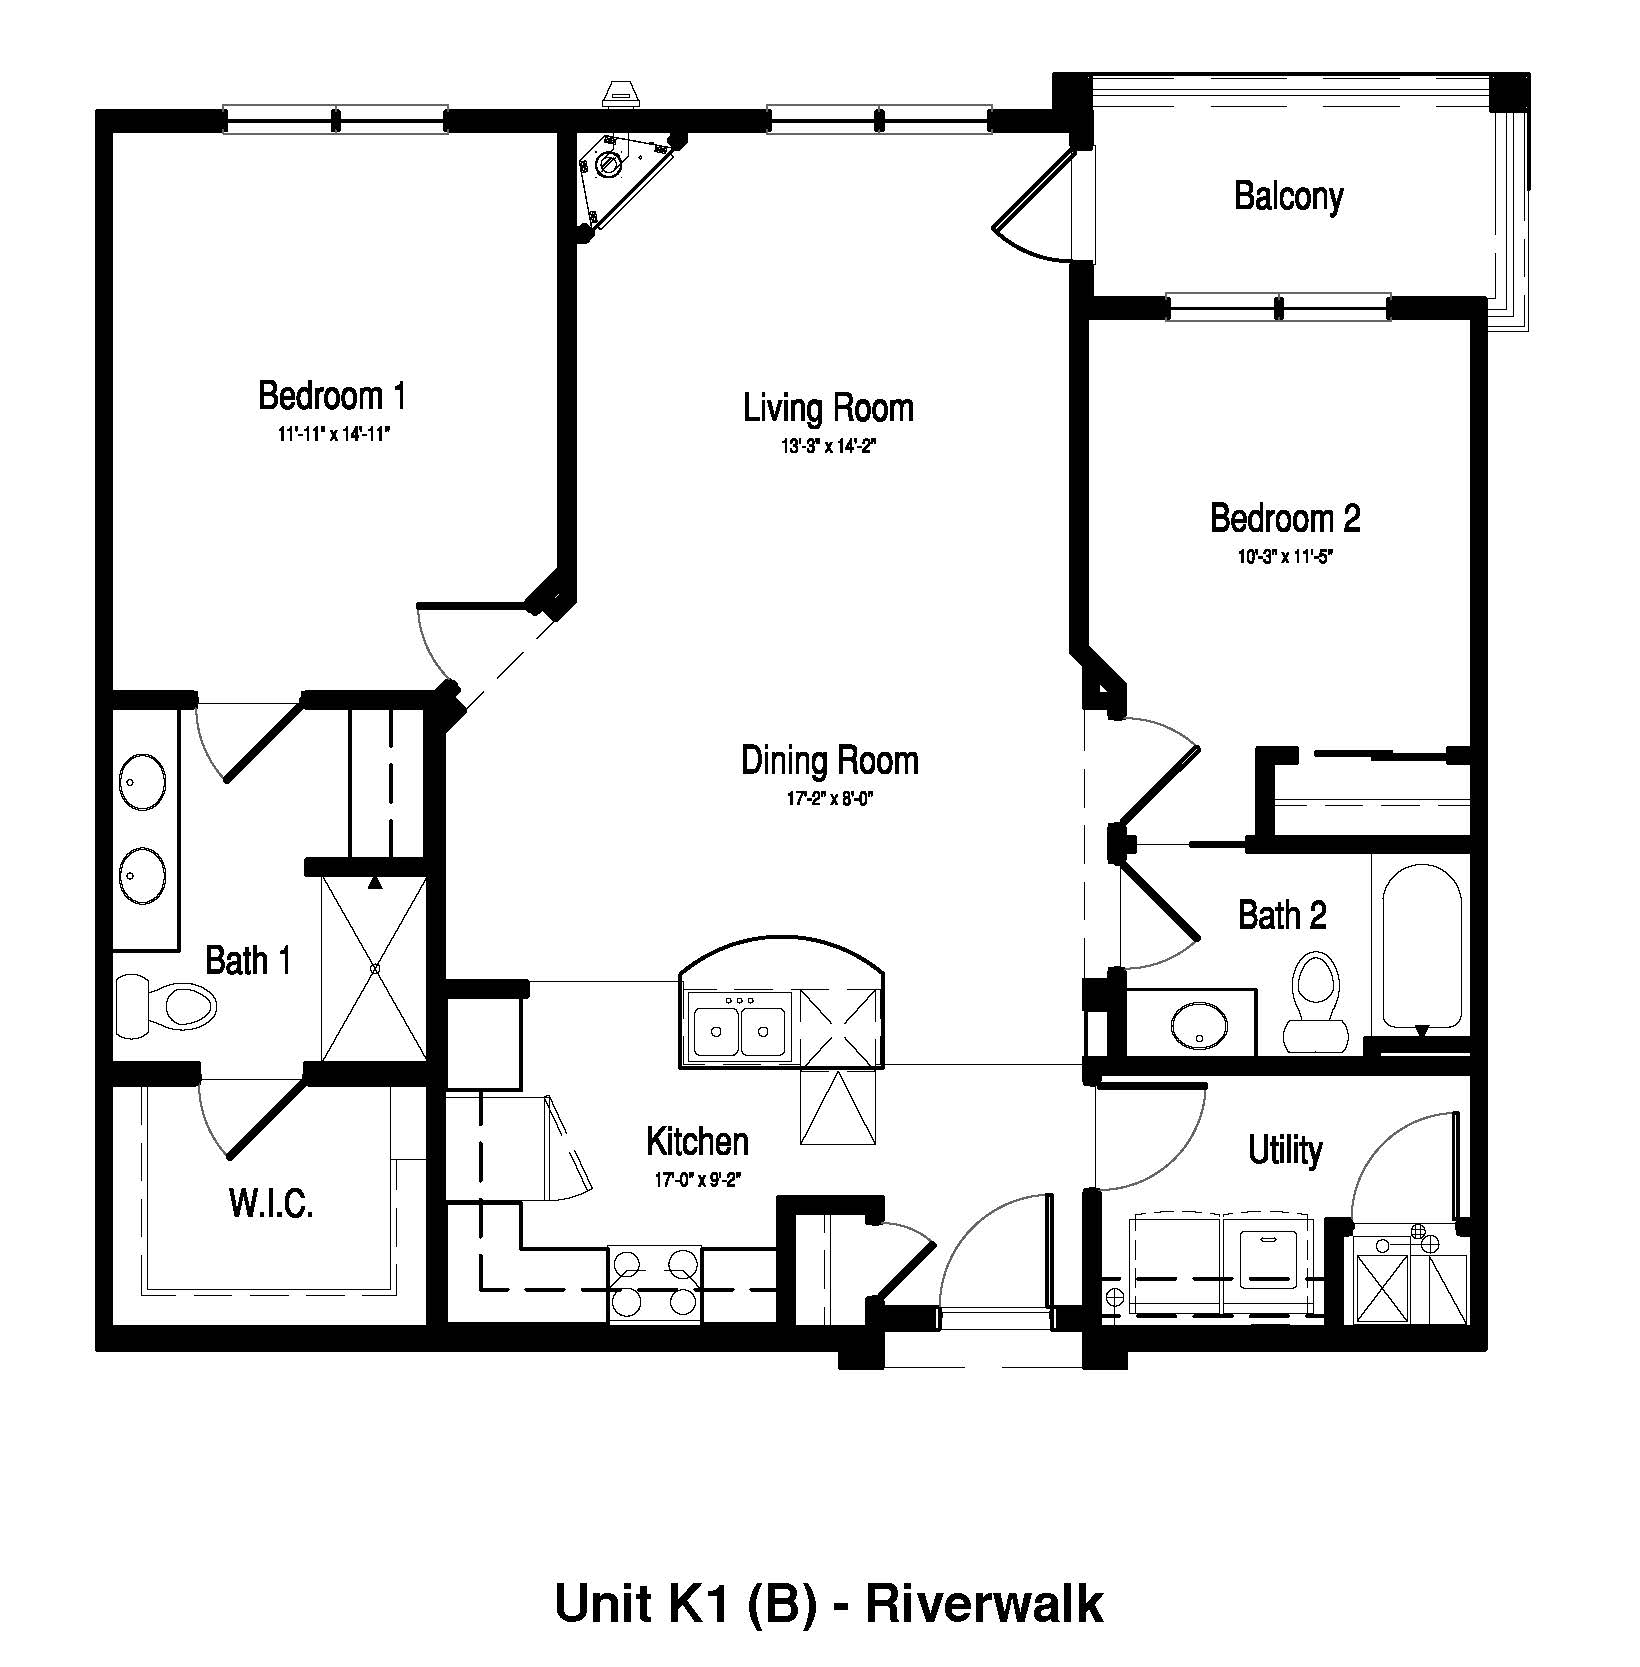 2 Bedroom, 2 Bath - 1,167 Sq. Ft. - RiverWalk on the Falls